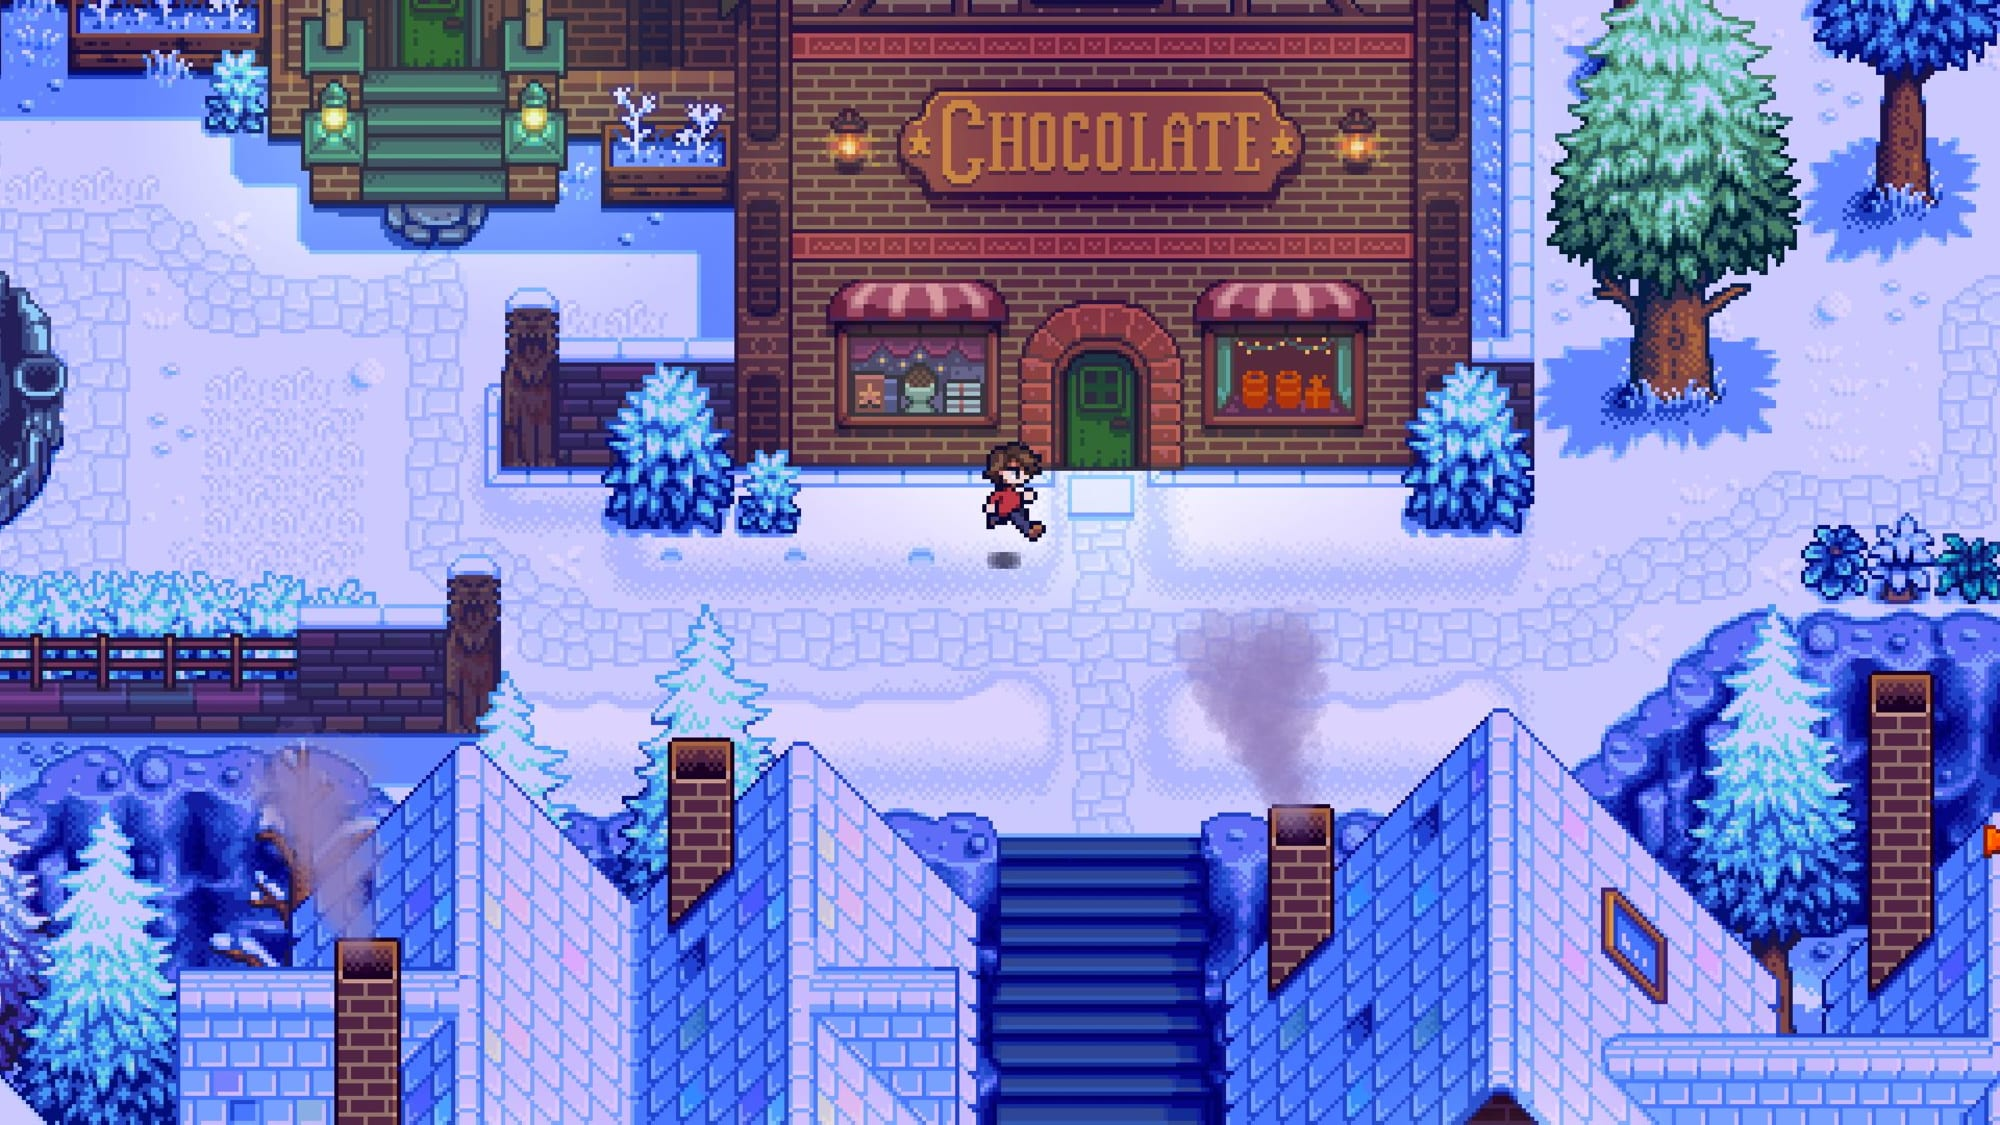 Haunted Chocolatier: Concerned Ape's new game is what now?